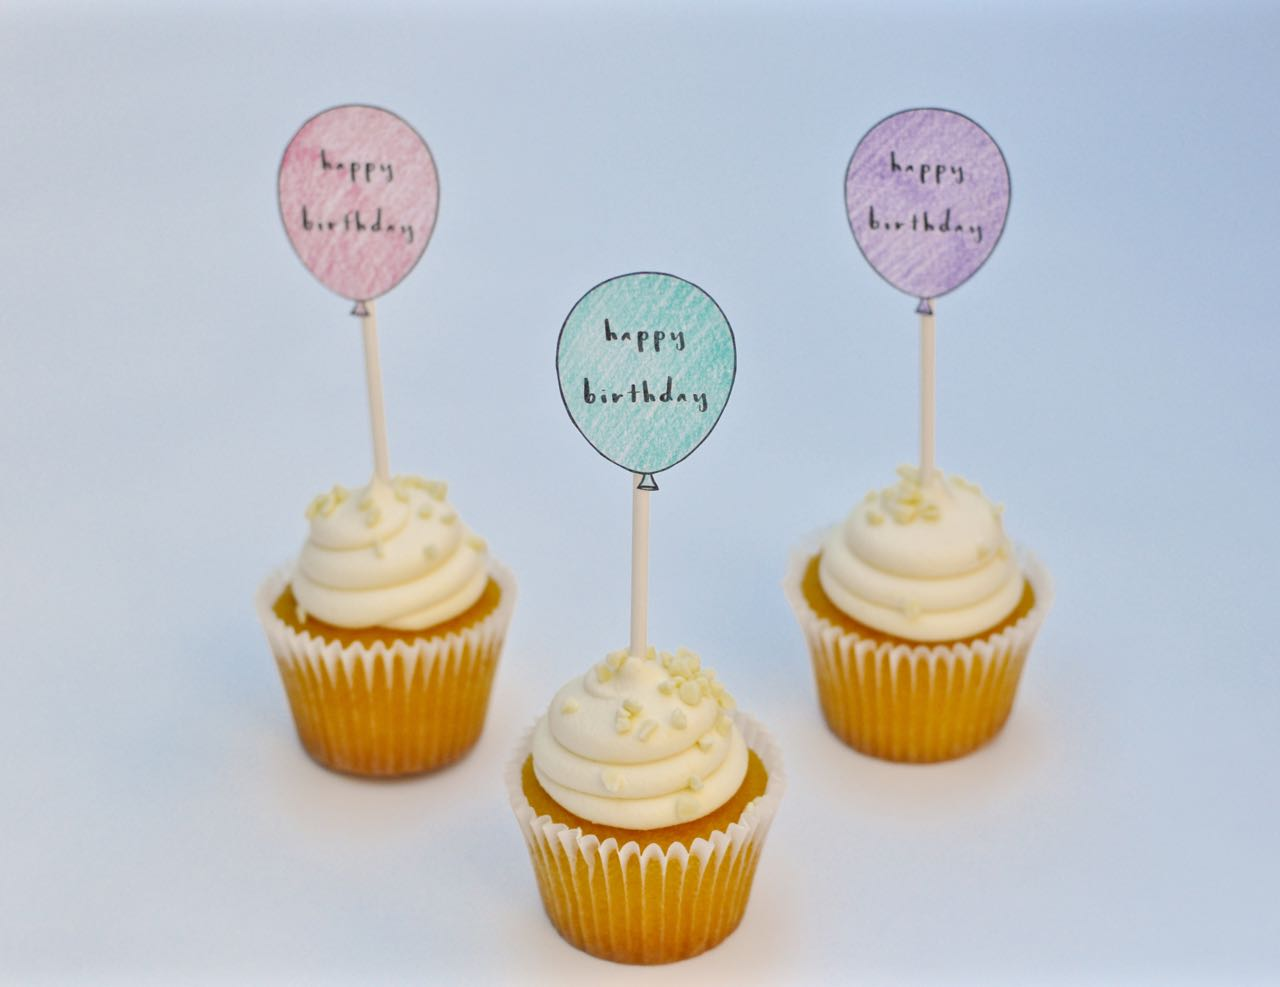 Awe Inspiring Free Printable Birthday Cupcake Toppers Make Life Lovely Funny Birthday Cards Online Fluifree Goldxyz